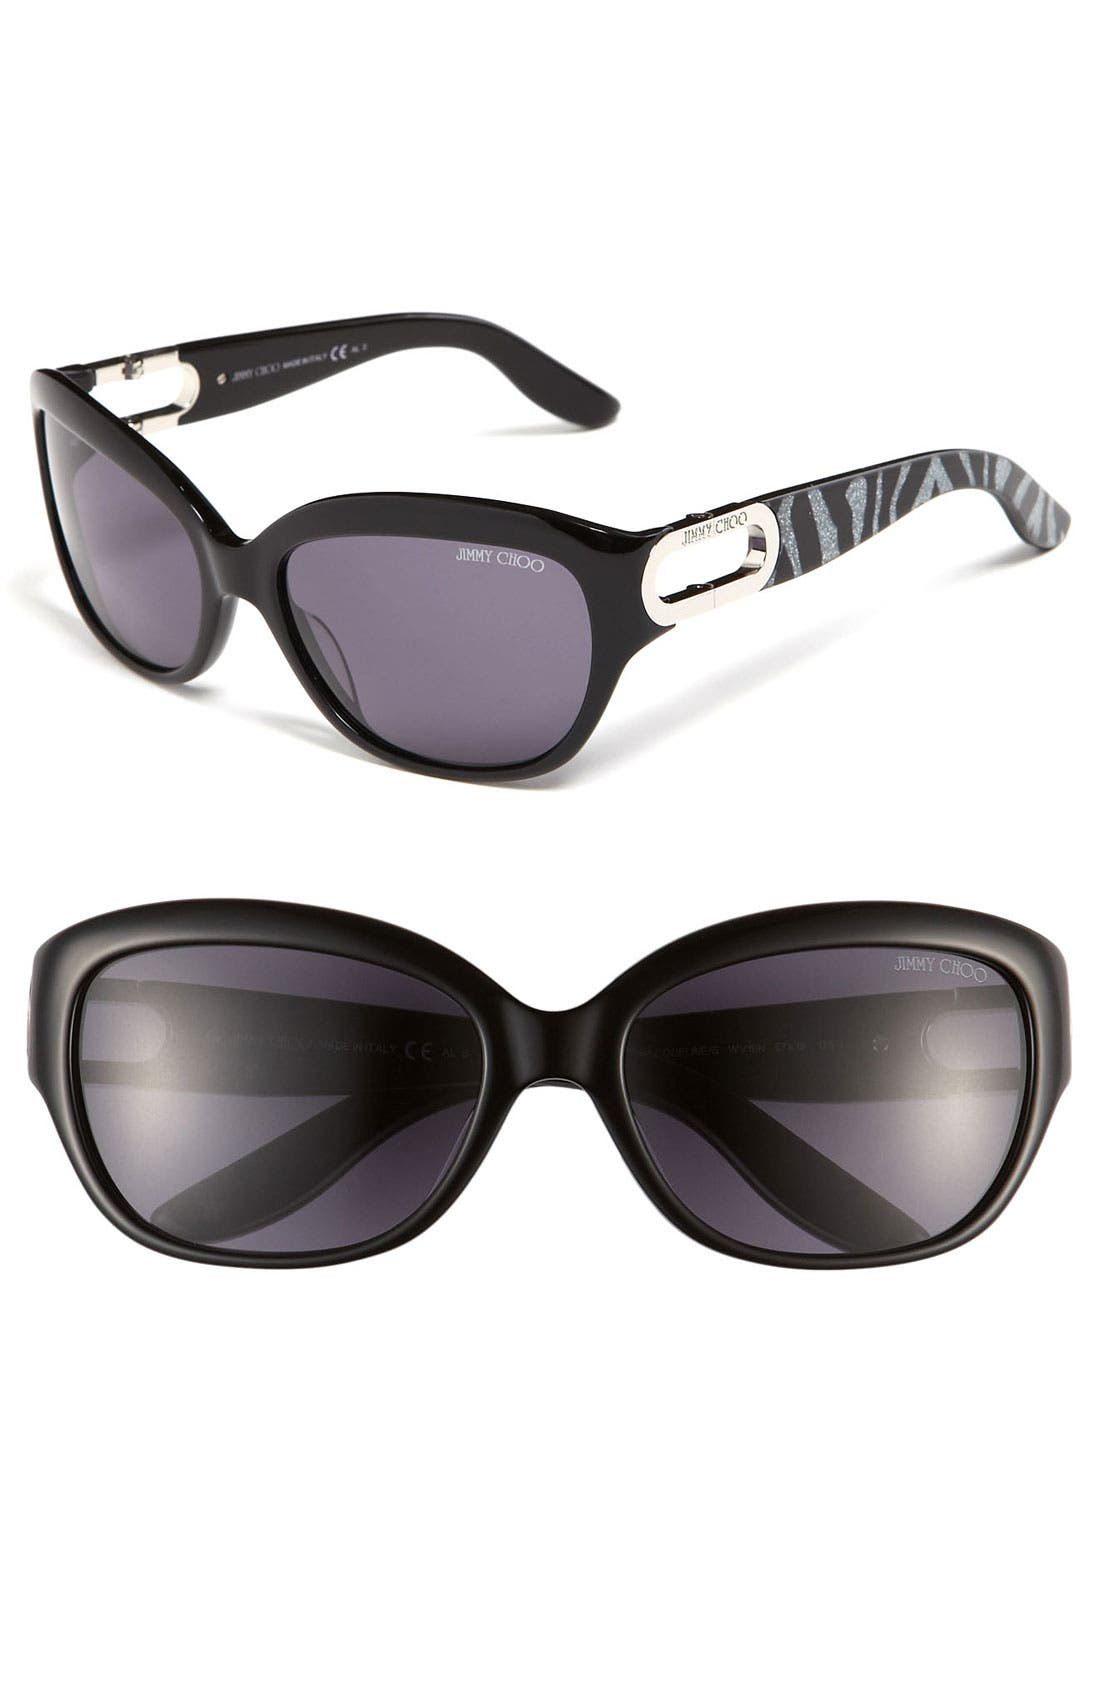 Main Image - Jimmy Choo 'Jaqueline' 57mm Cat's Eye Sunglasses